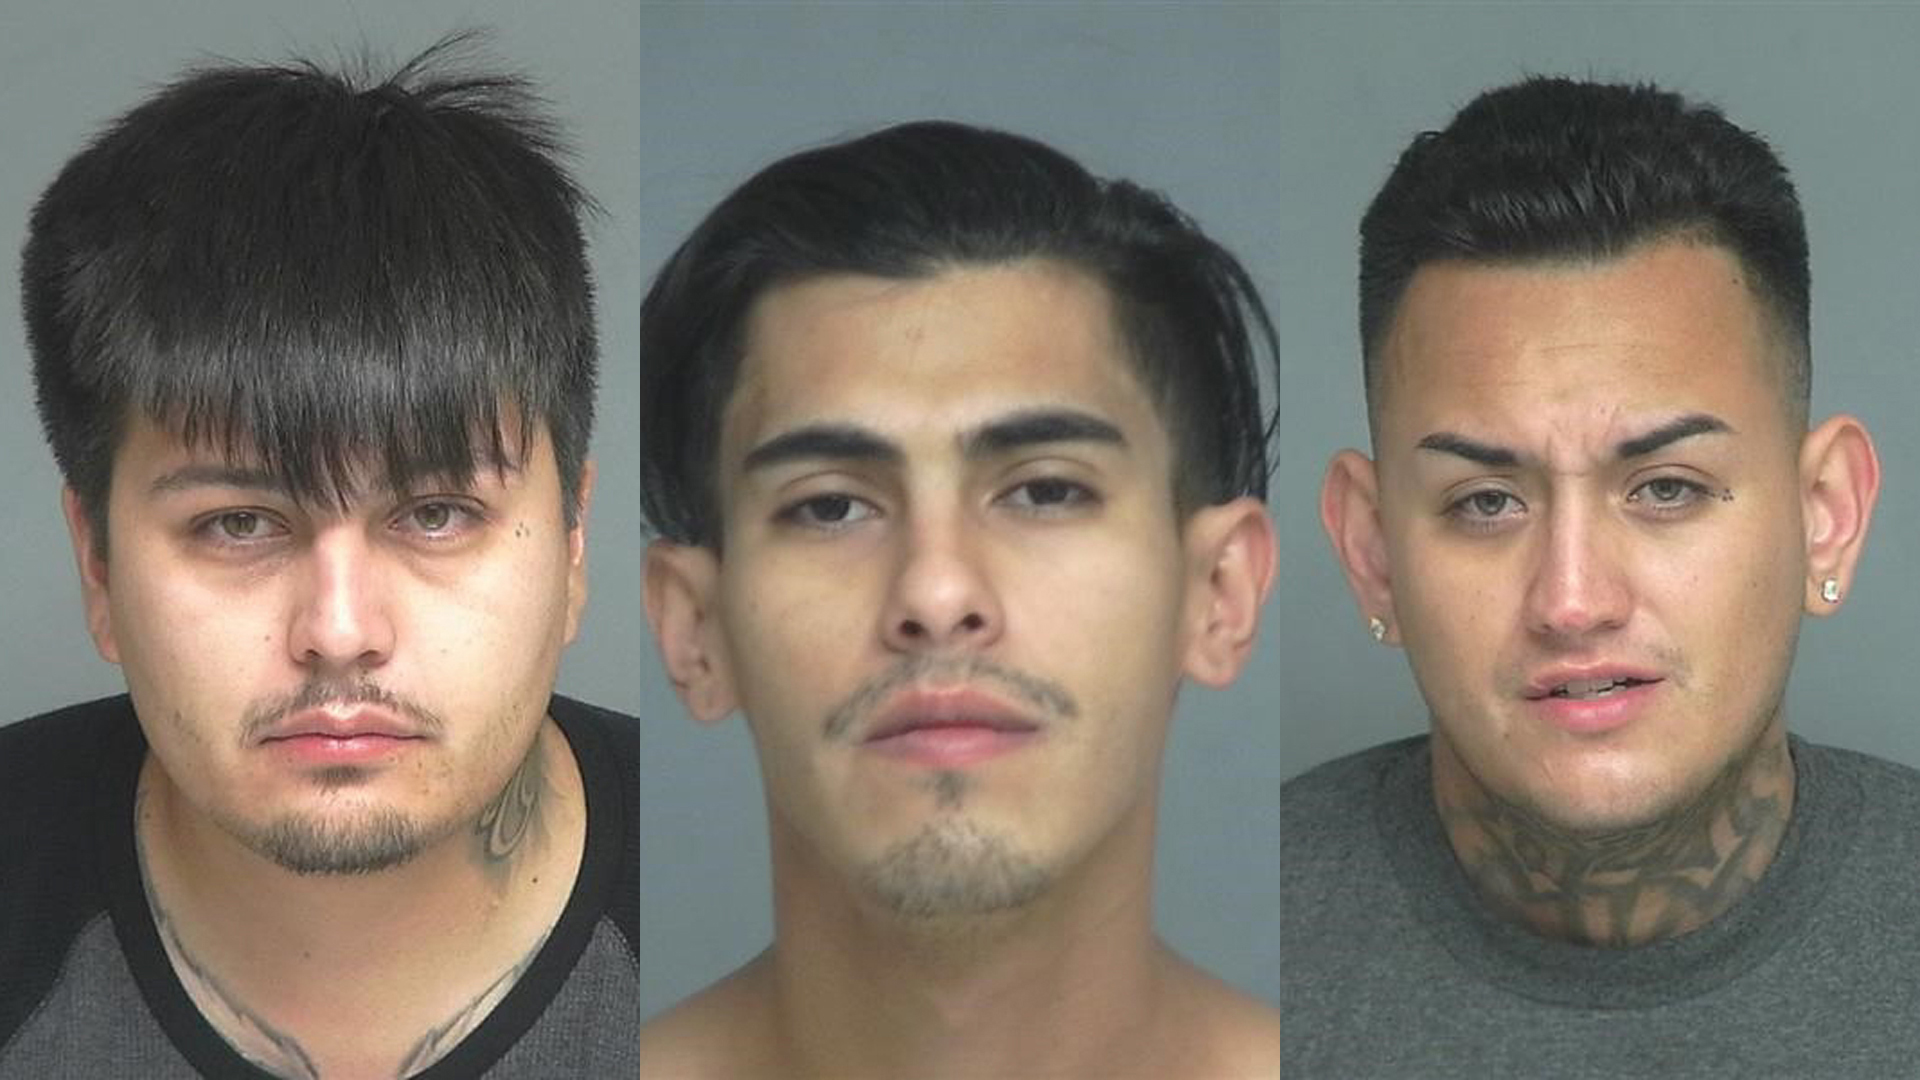 (Left to right) Victor Rene Larios, 29, Jacob Alexander Ruiz, 24, and Joseph Anthony Ruiz, 27, all of Arizona, pictured in photos released by the Garden Grove Police Department following their arrests on Aug. 5, 2019.